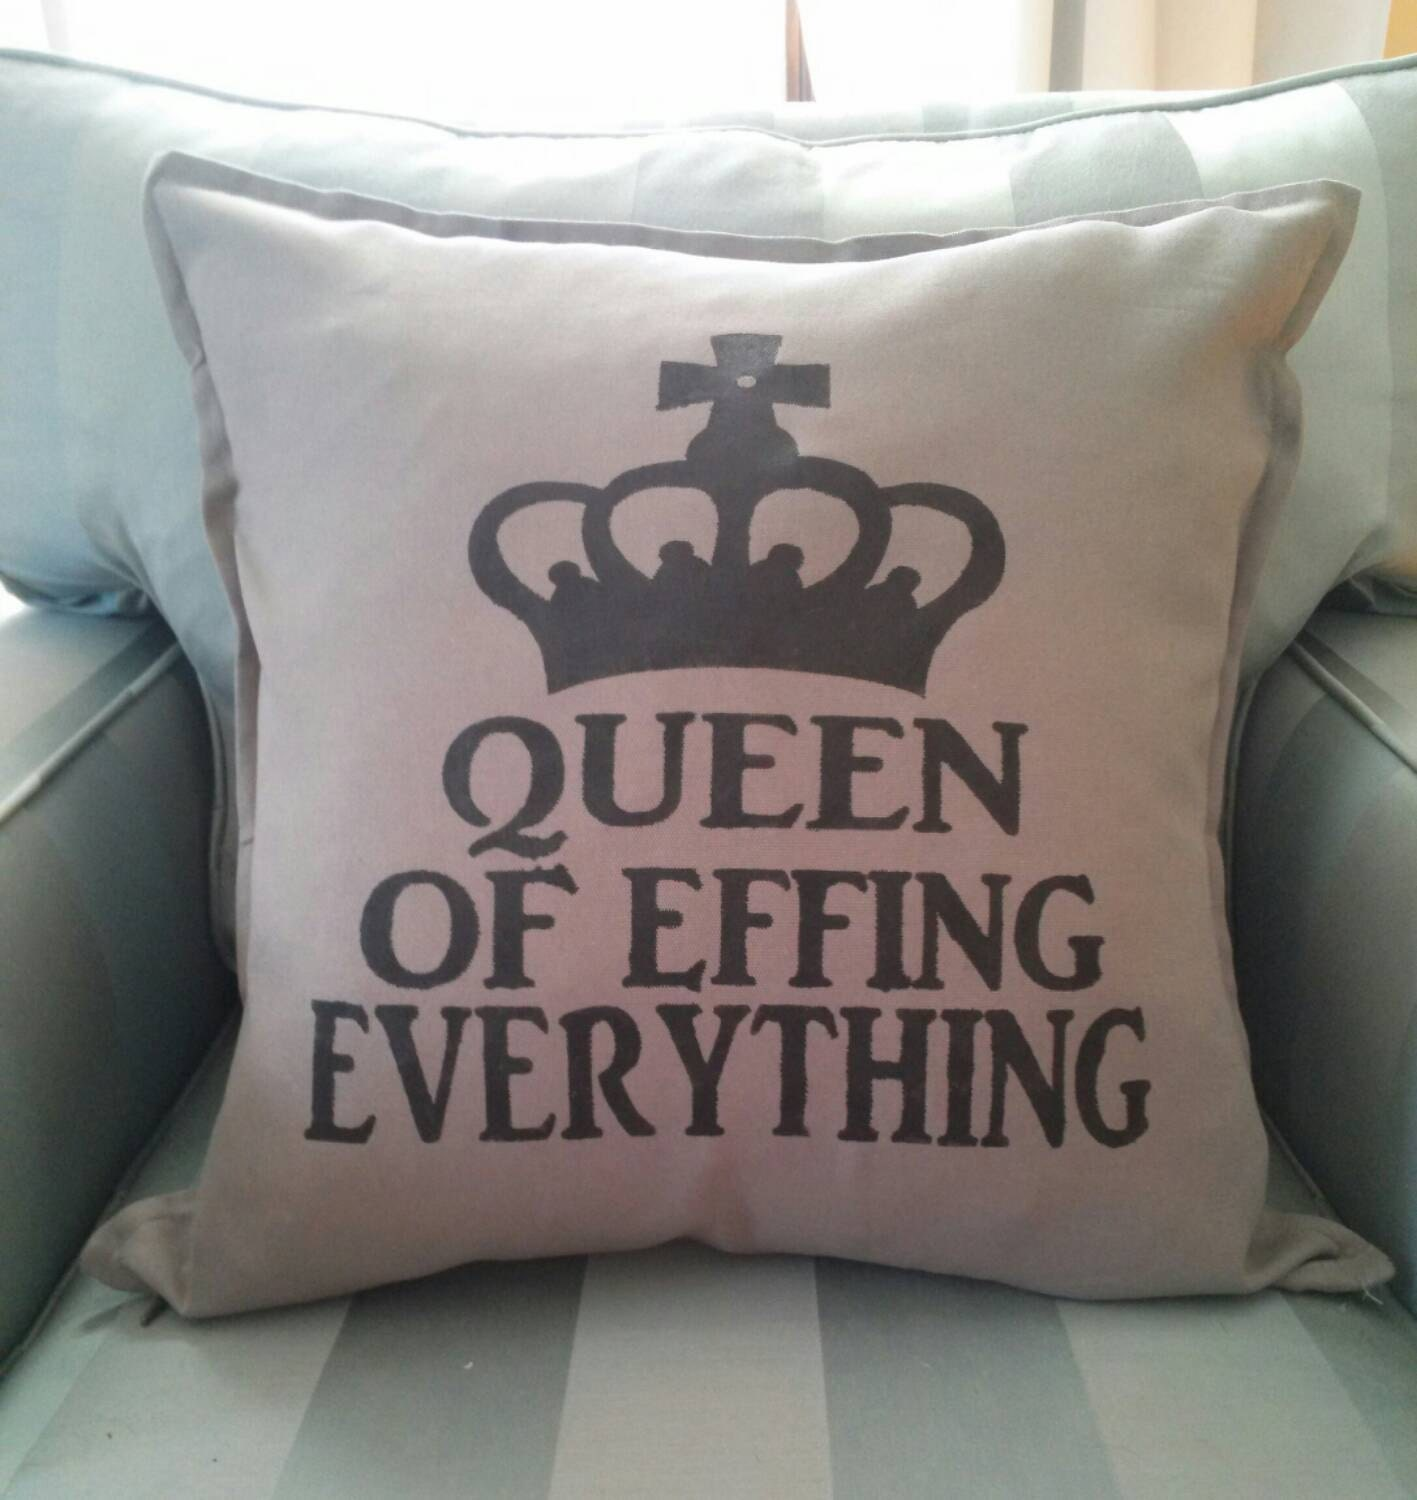 Bedroom throw pillows queen of everything throw by 42ndstdesigns - Bedroom decorative pillows ...